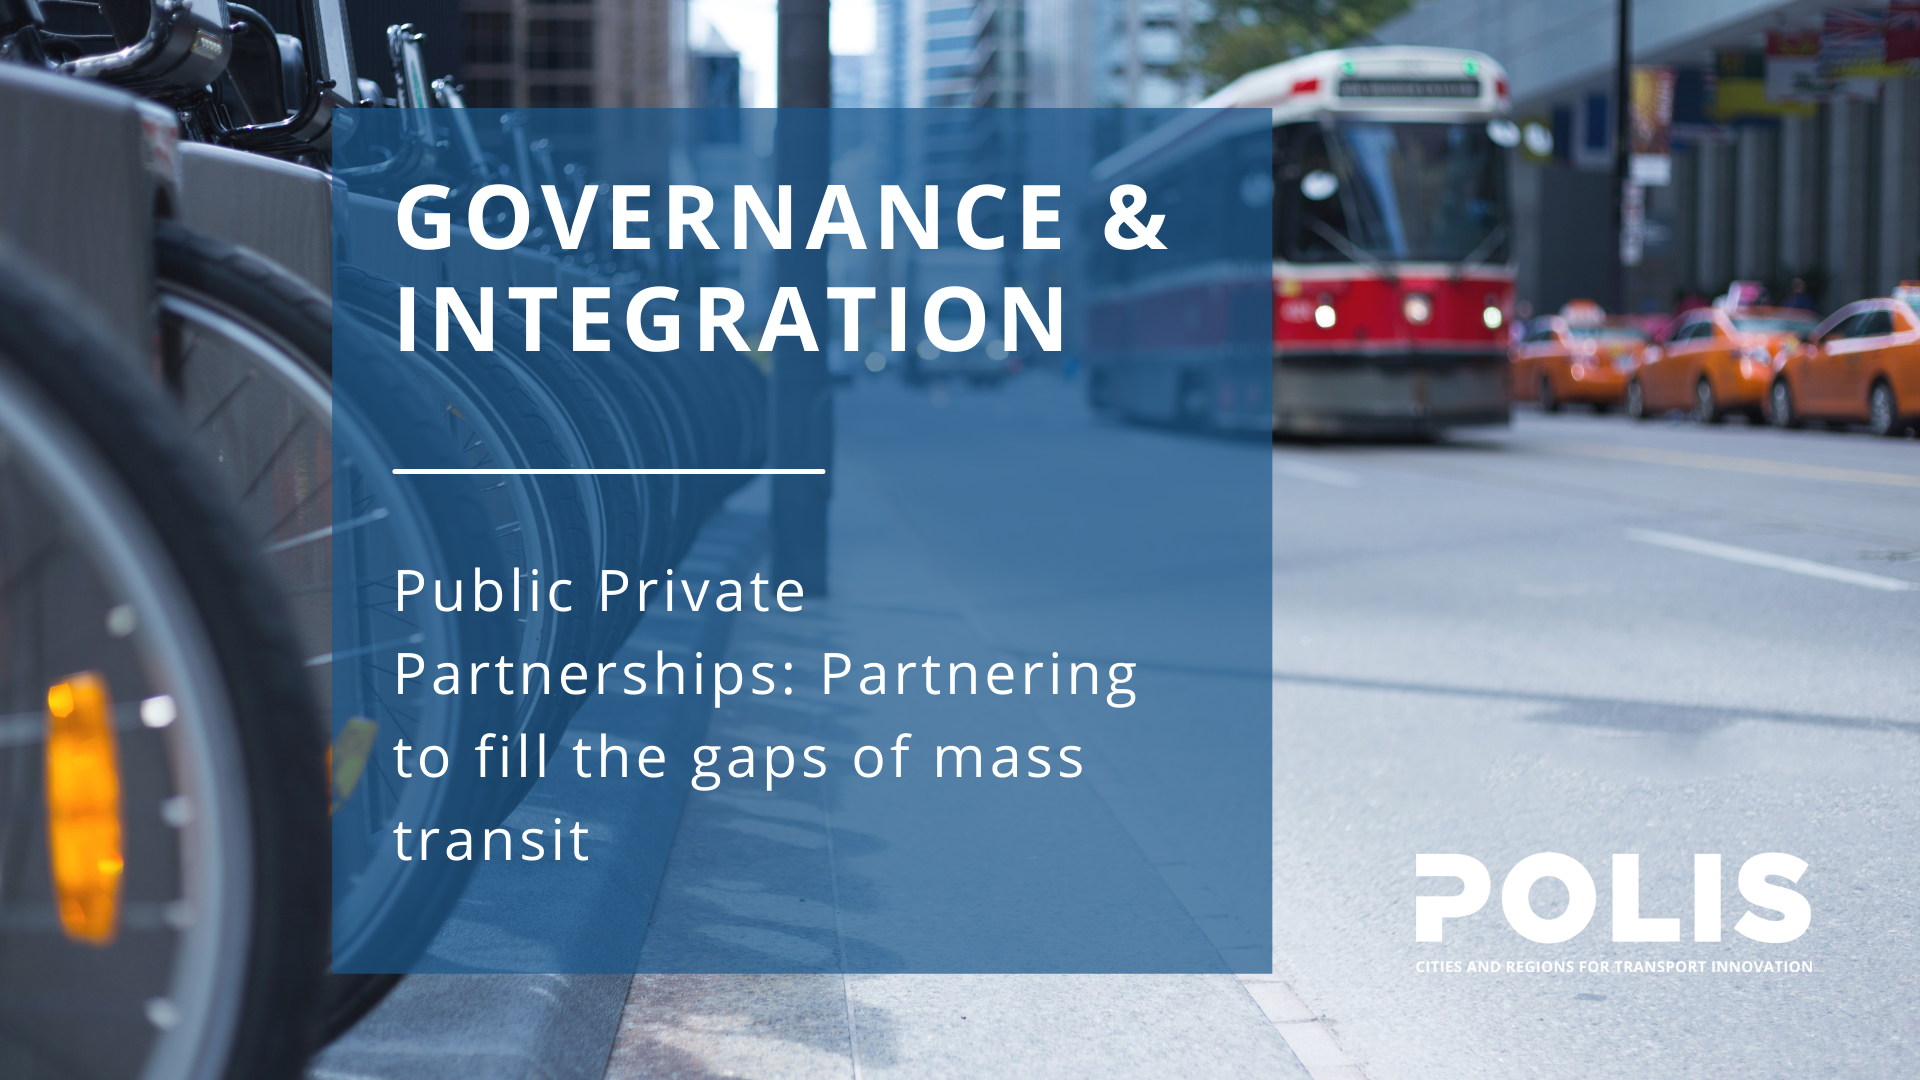 Public Private Partnerships: Partnering to fill the gaps of mass transit